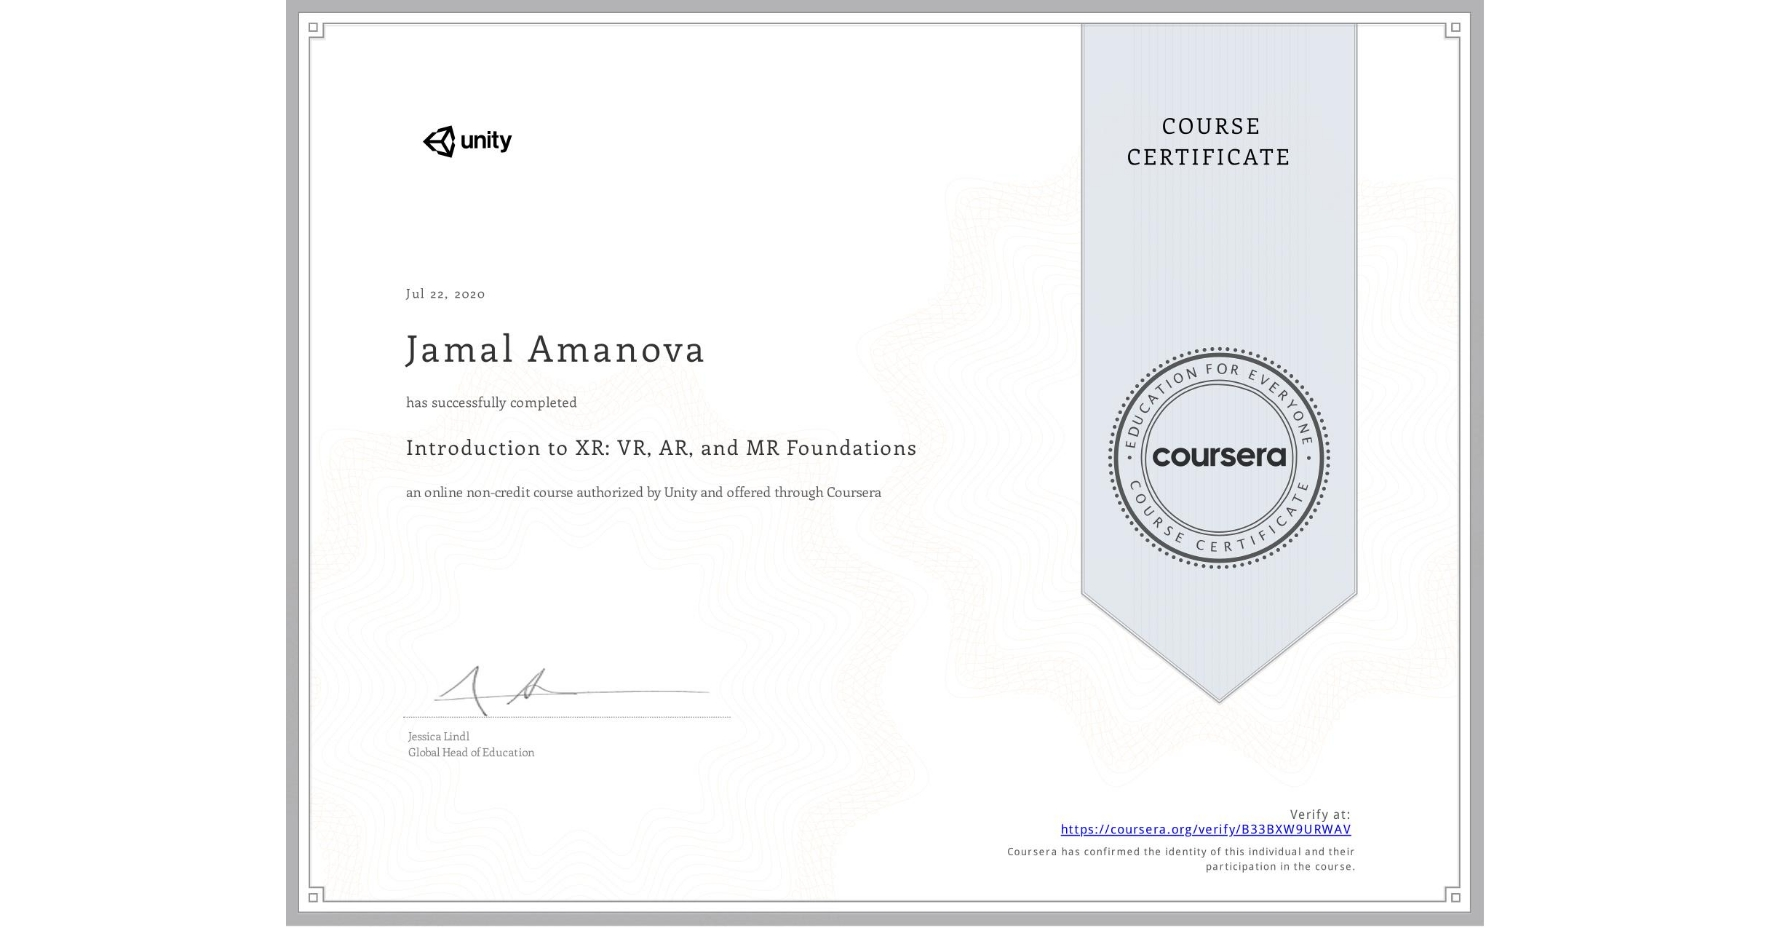 View certificate for Jamal Amanova, Introduction to XR: VR, AR, and MR Foundations, an online non-credit course authorized by Unity and offered through Coursera